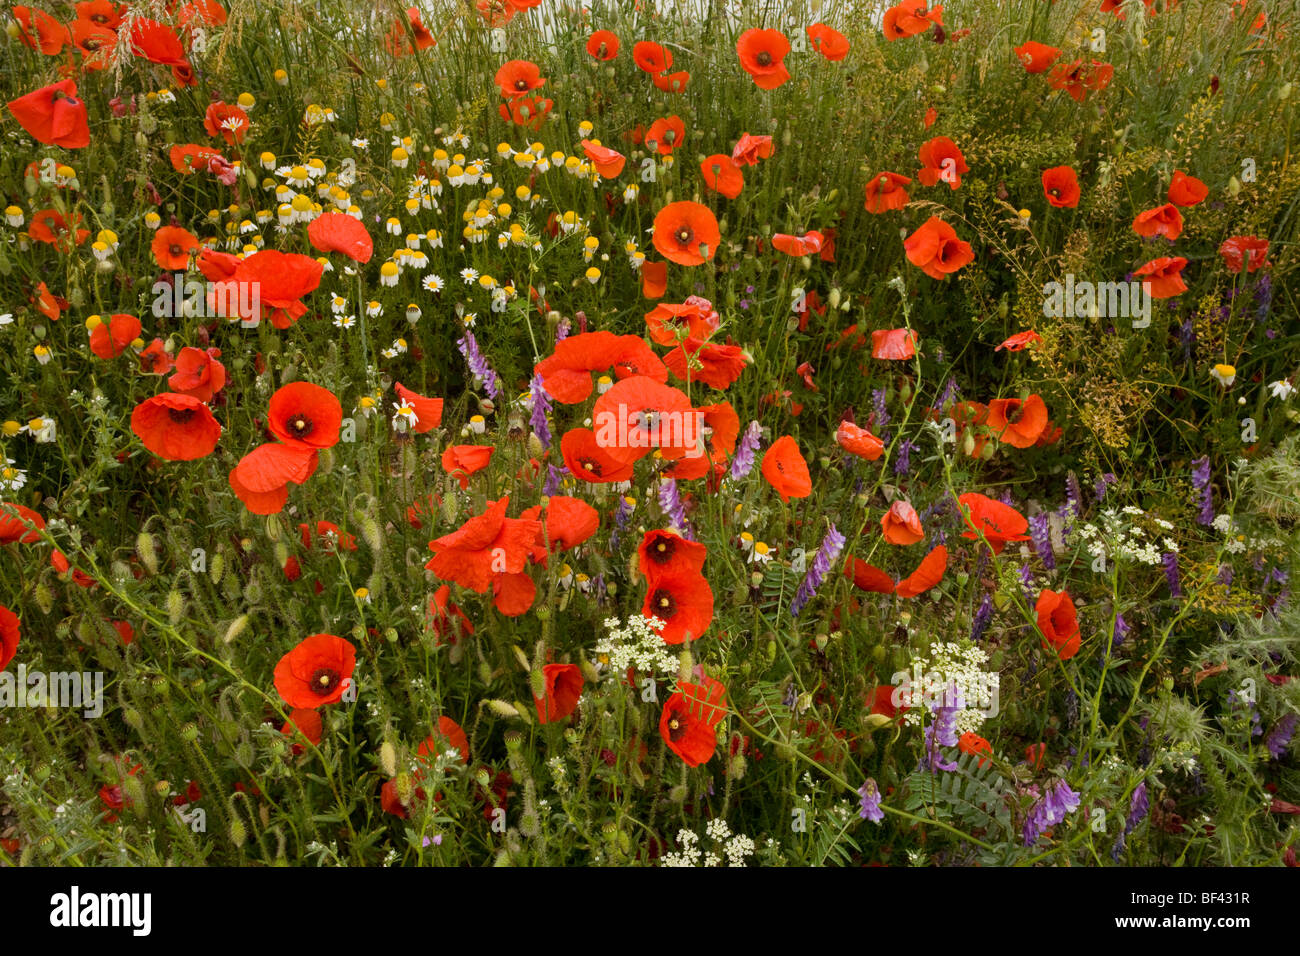 poppies Papaver rhoeas and other cornfield weeds  on the Grande Piano, Monte Sibillini Italy - Stock Image